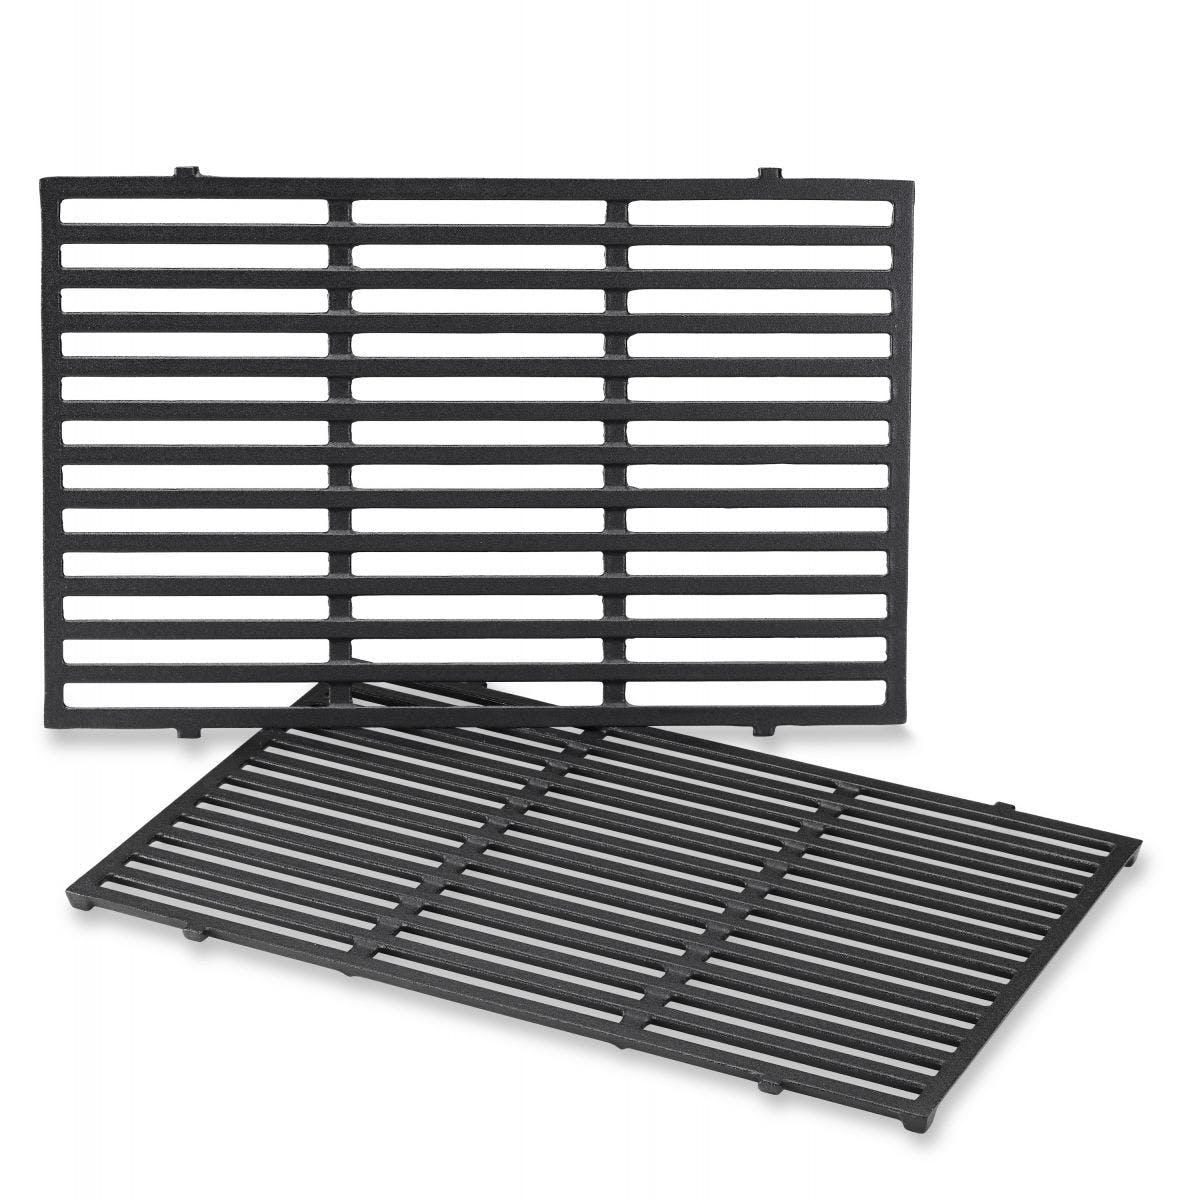 Porcelain-enameled cast iron grill cooking grates - What's the best grill grate? - Weber Grills